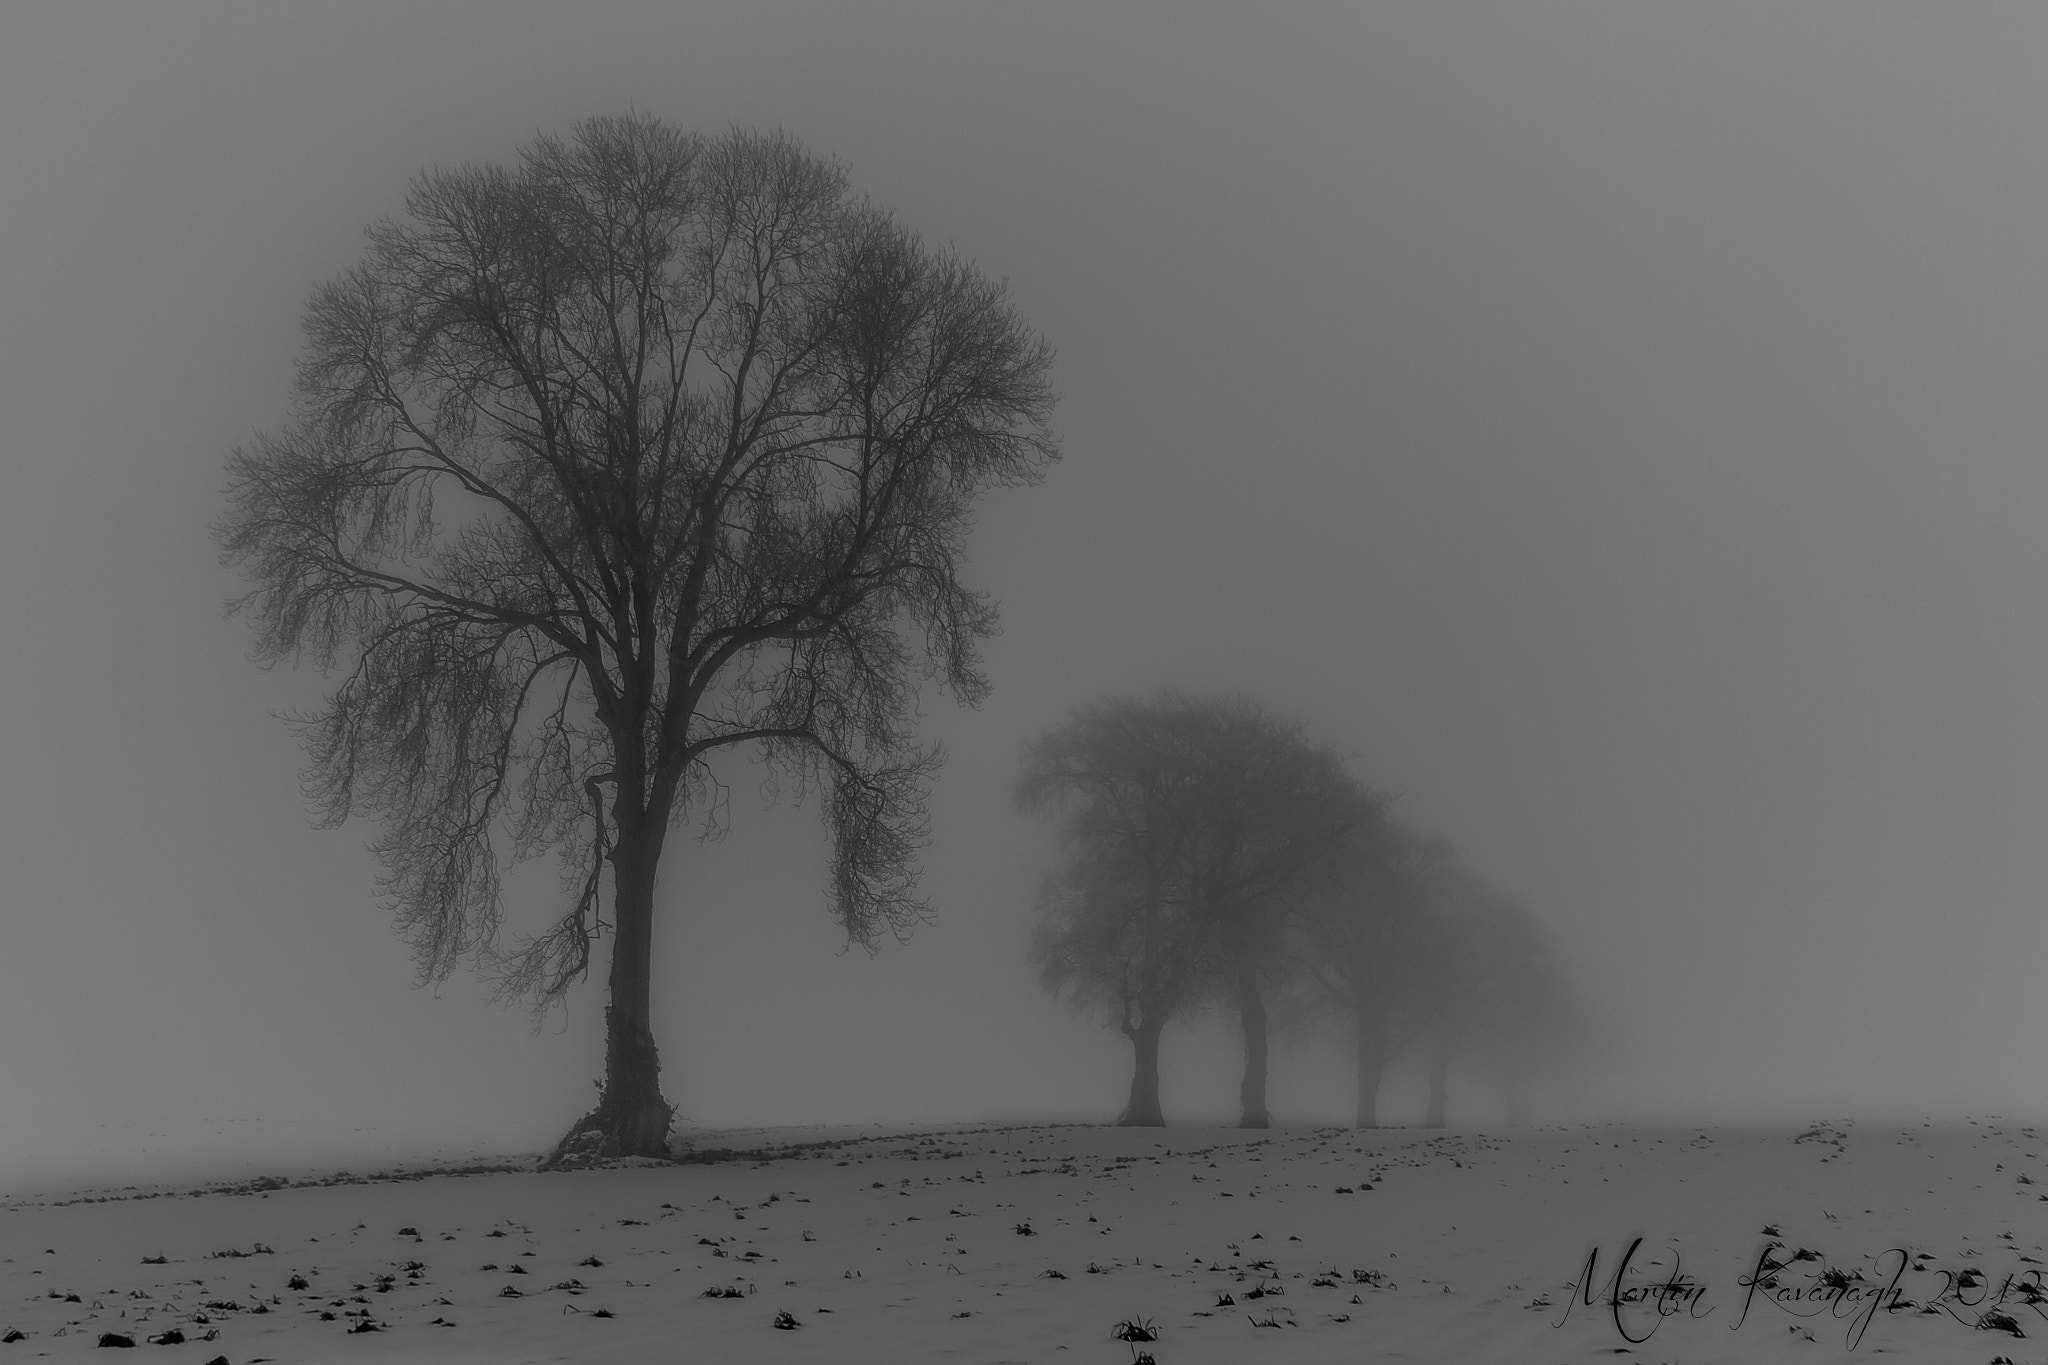 Photograph Trees in the mist... by Martin Kavanagh on 500px